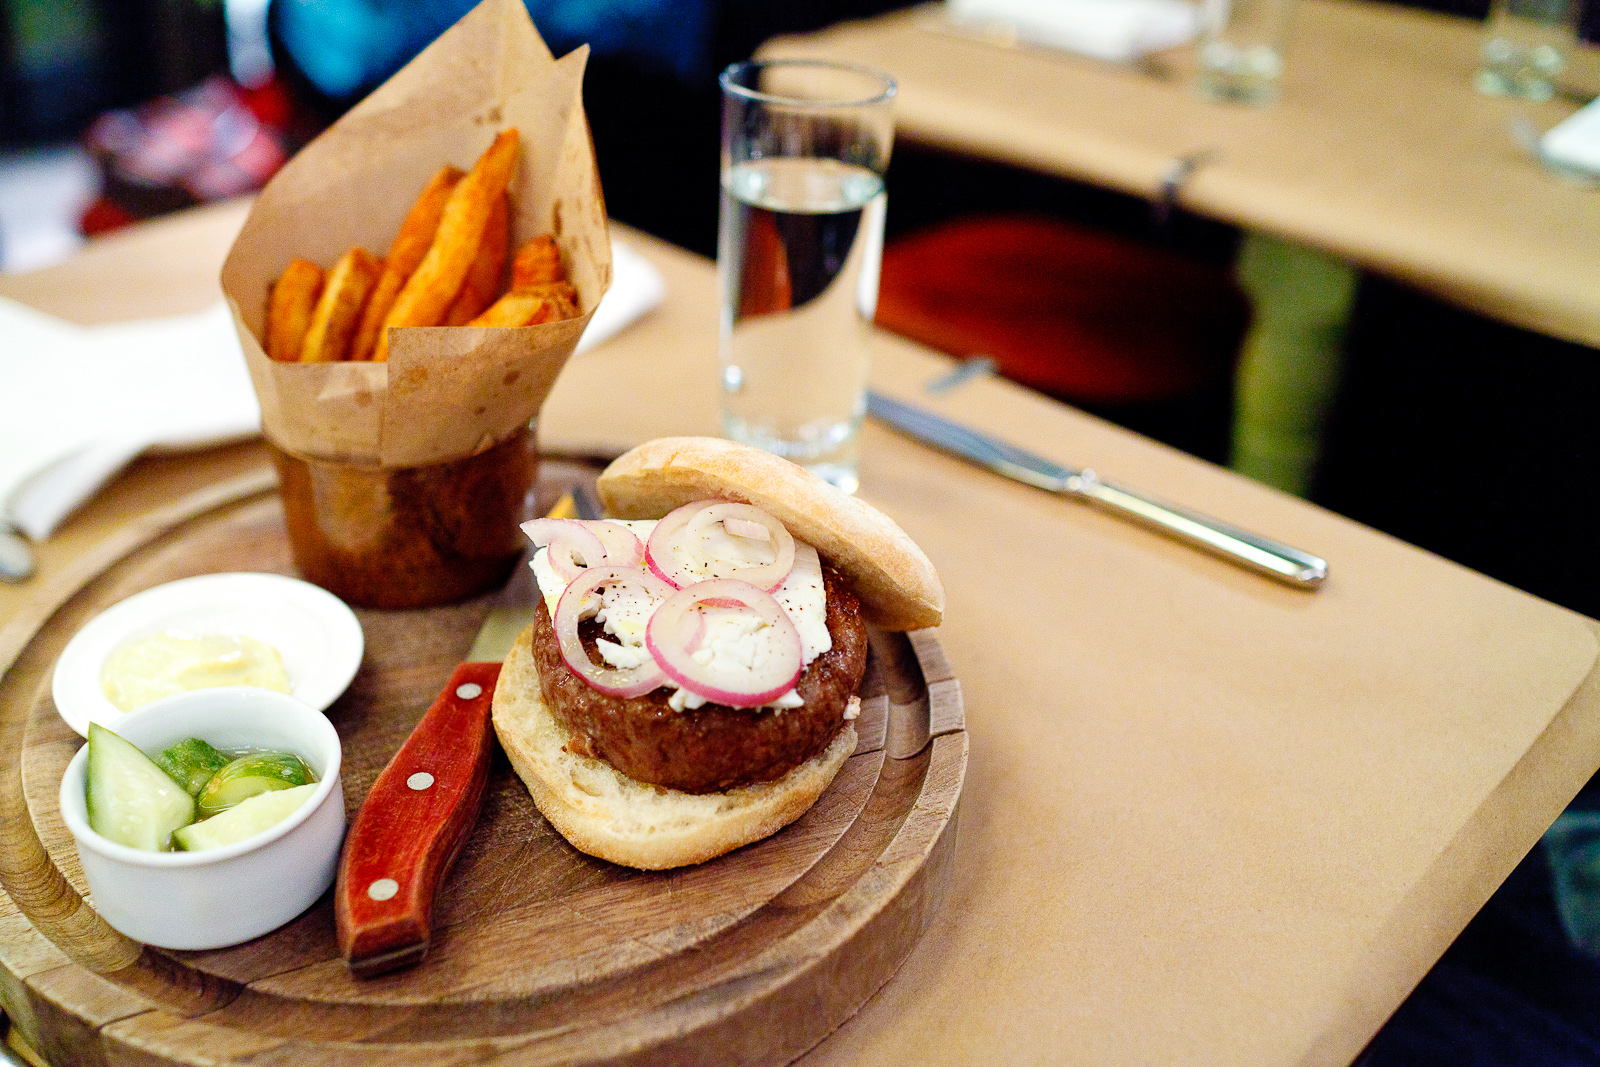 Chargrilled lamb burger with feta, cumin mayo, and thrice cooked chips ($21)